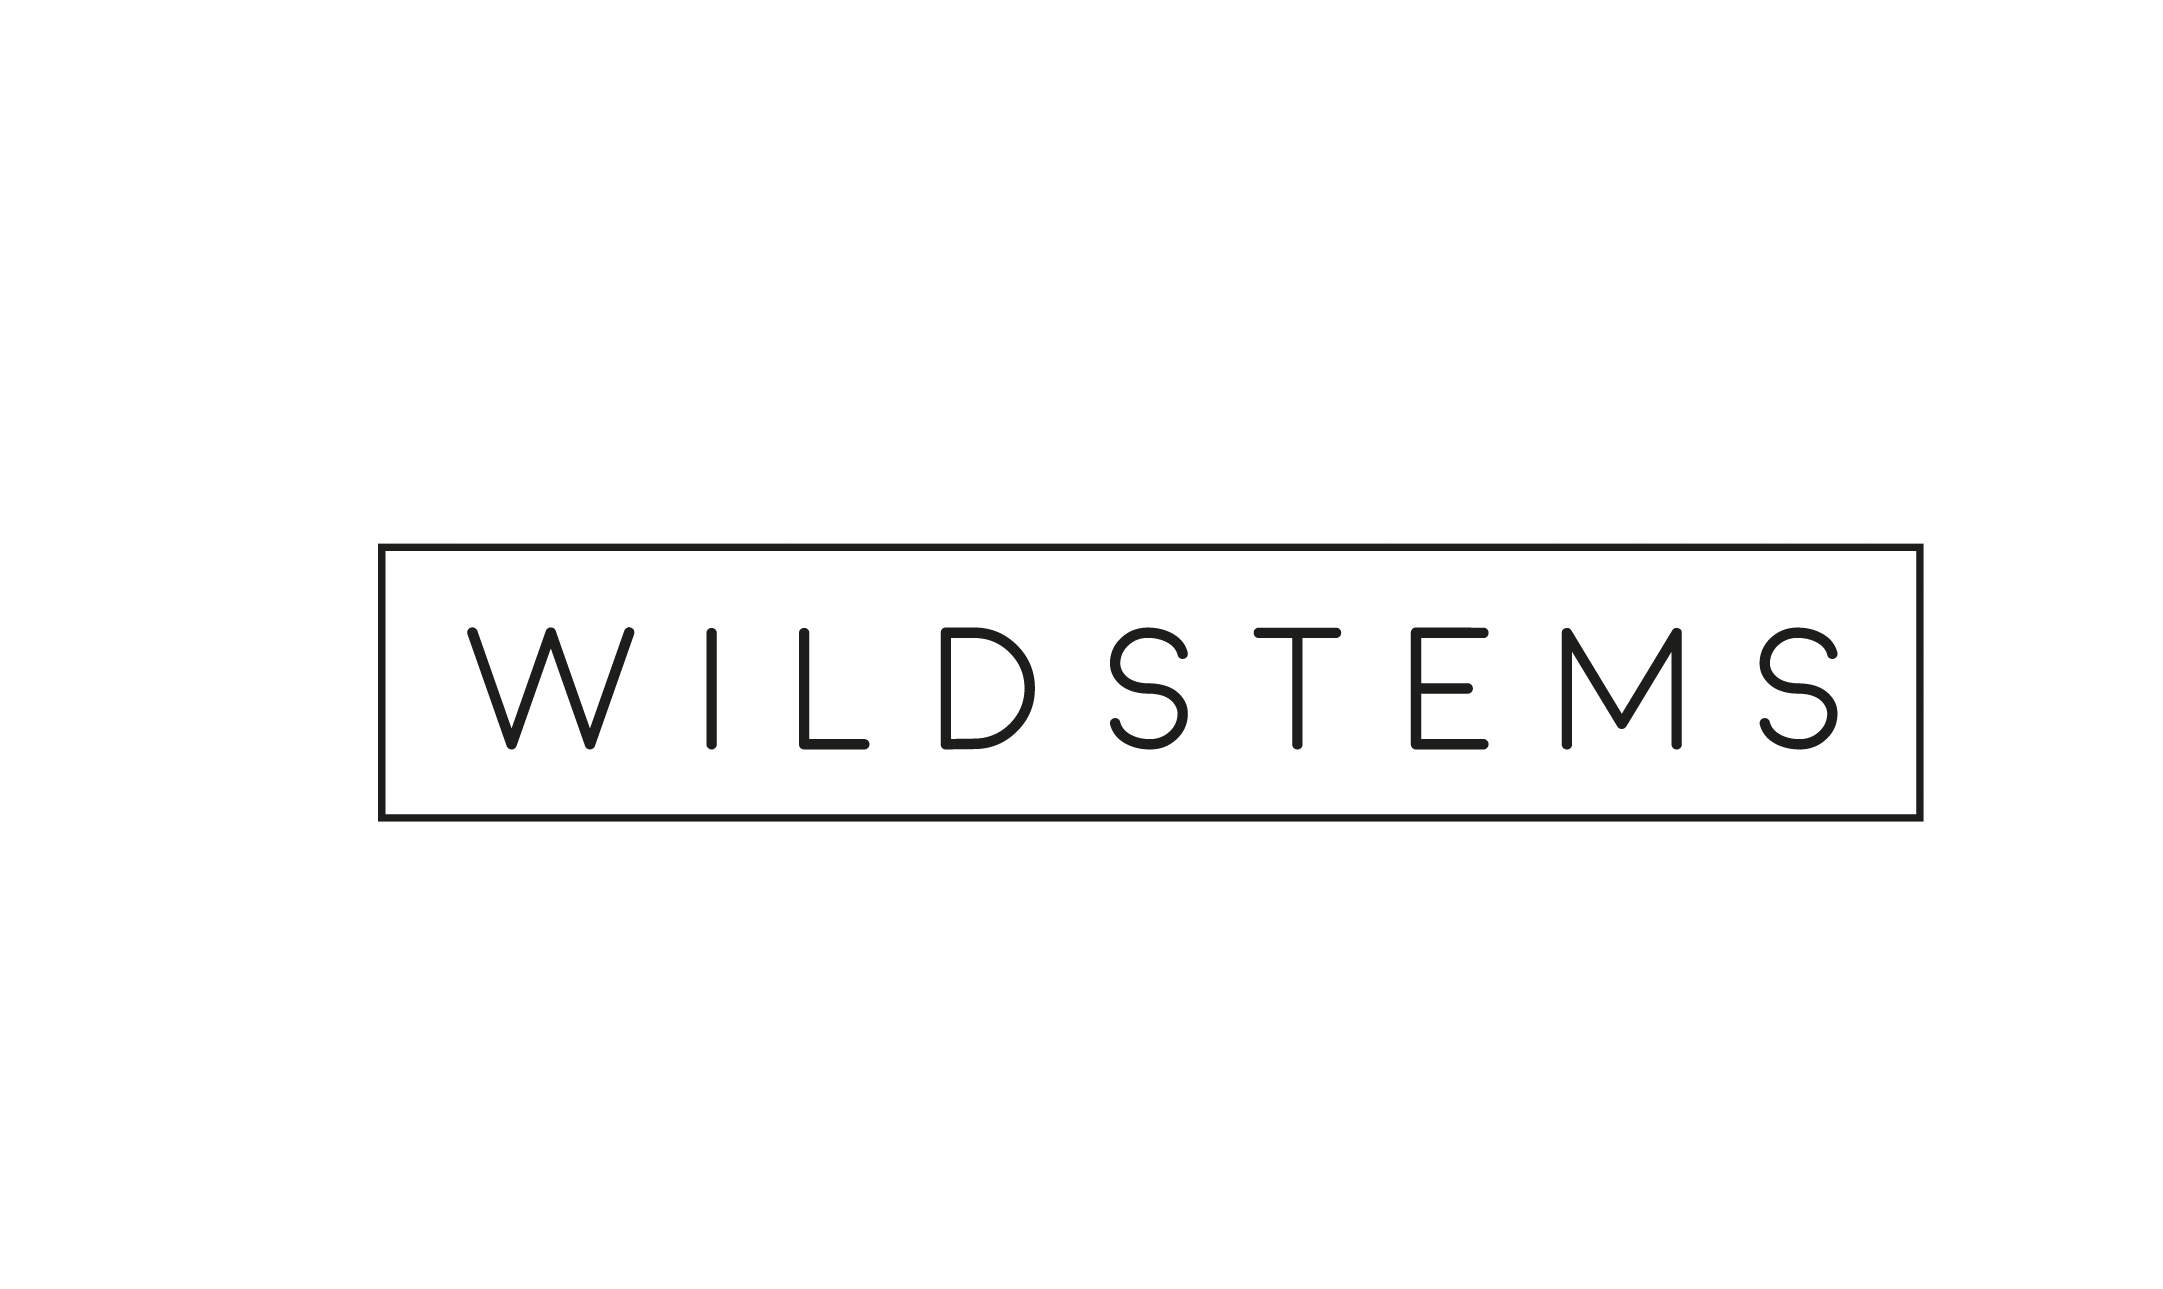 WILDSTEMS LOGO_WHITE SILHOUETTE.png